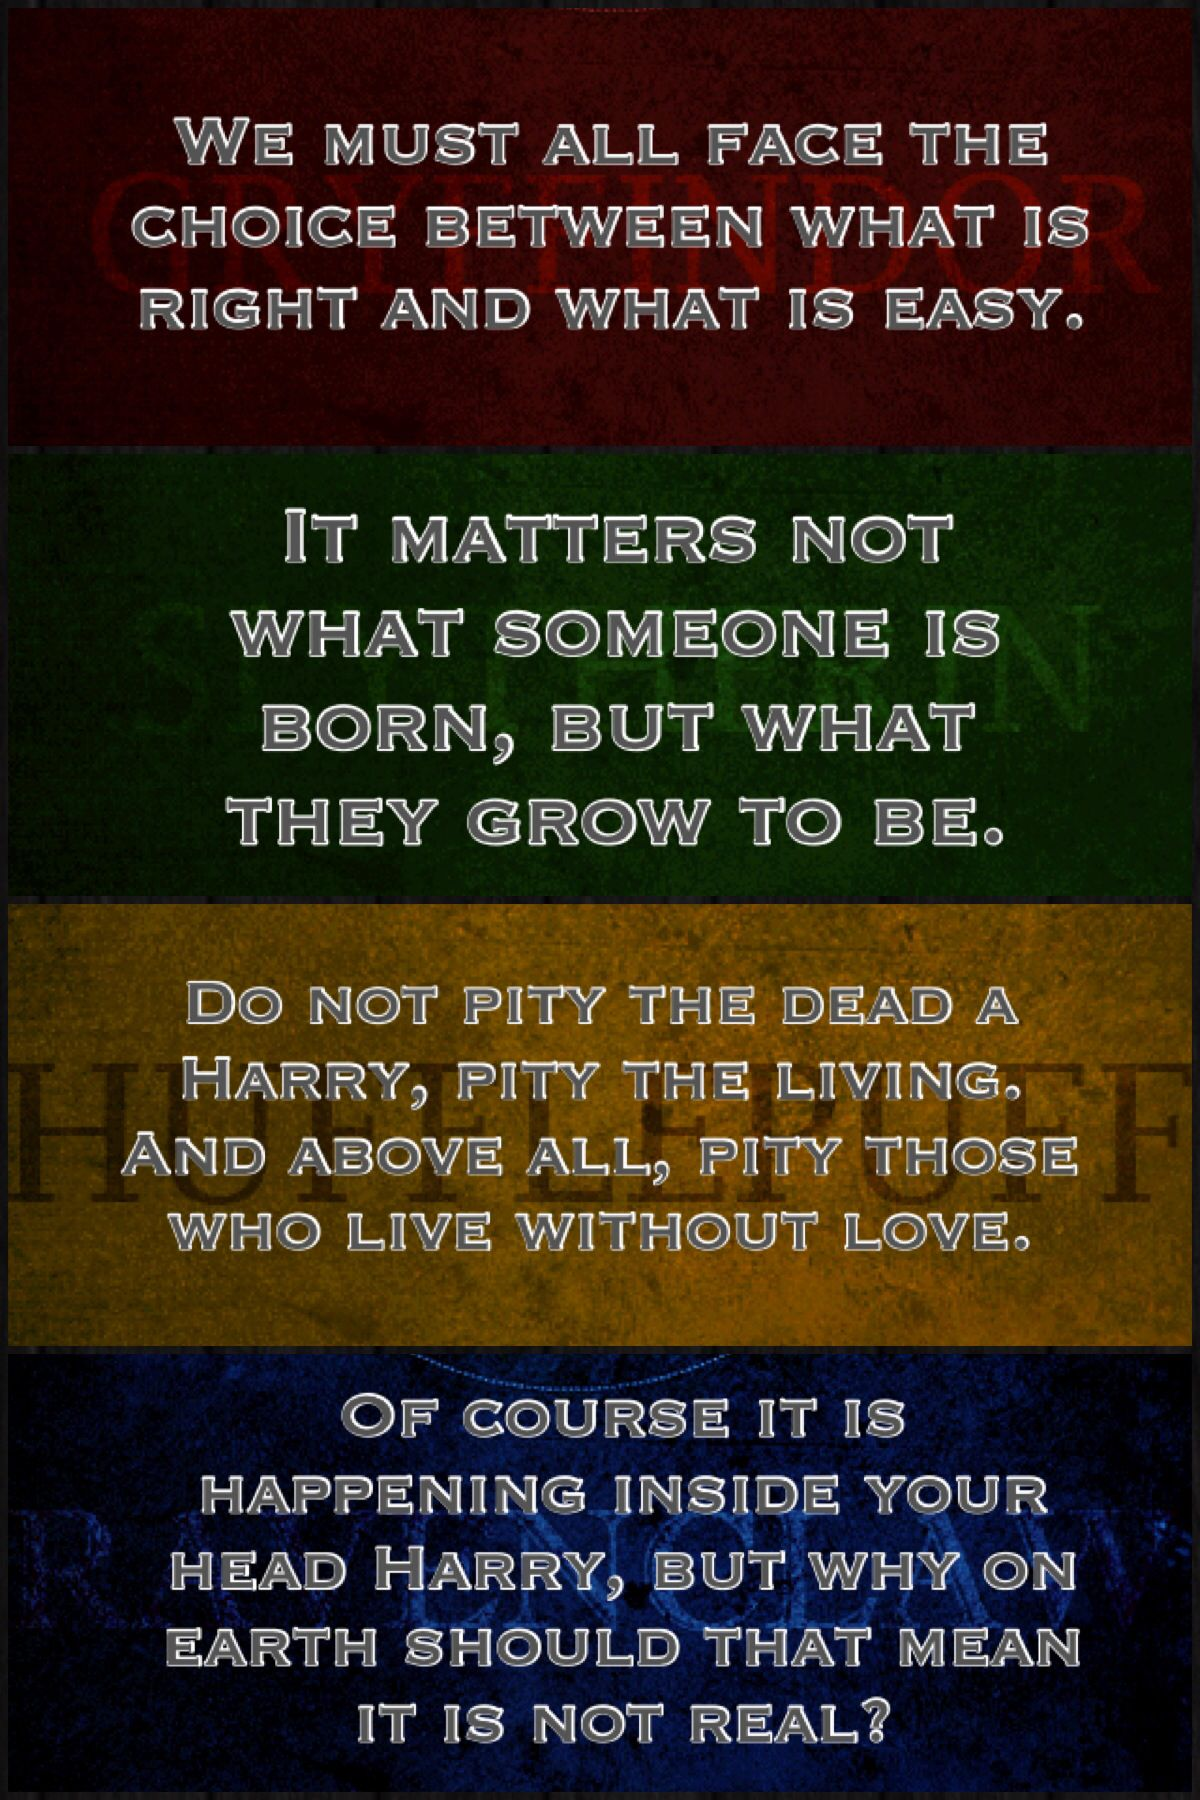 Harry Potter Book Quotes House Quotes From The Books  Harry Potter  Pinterest  House